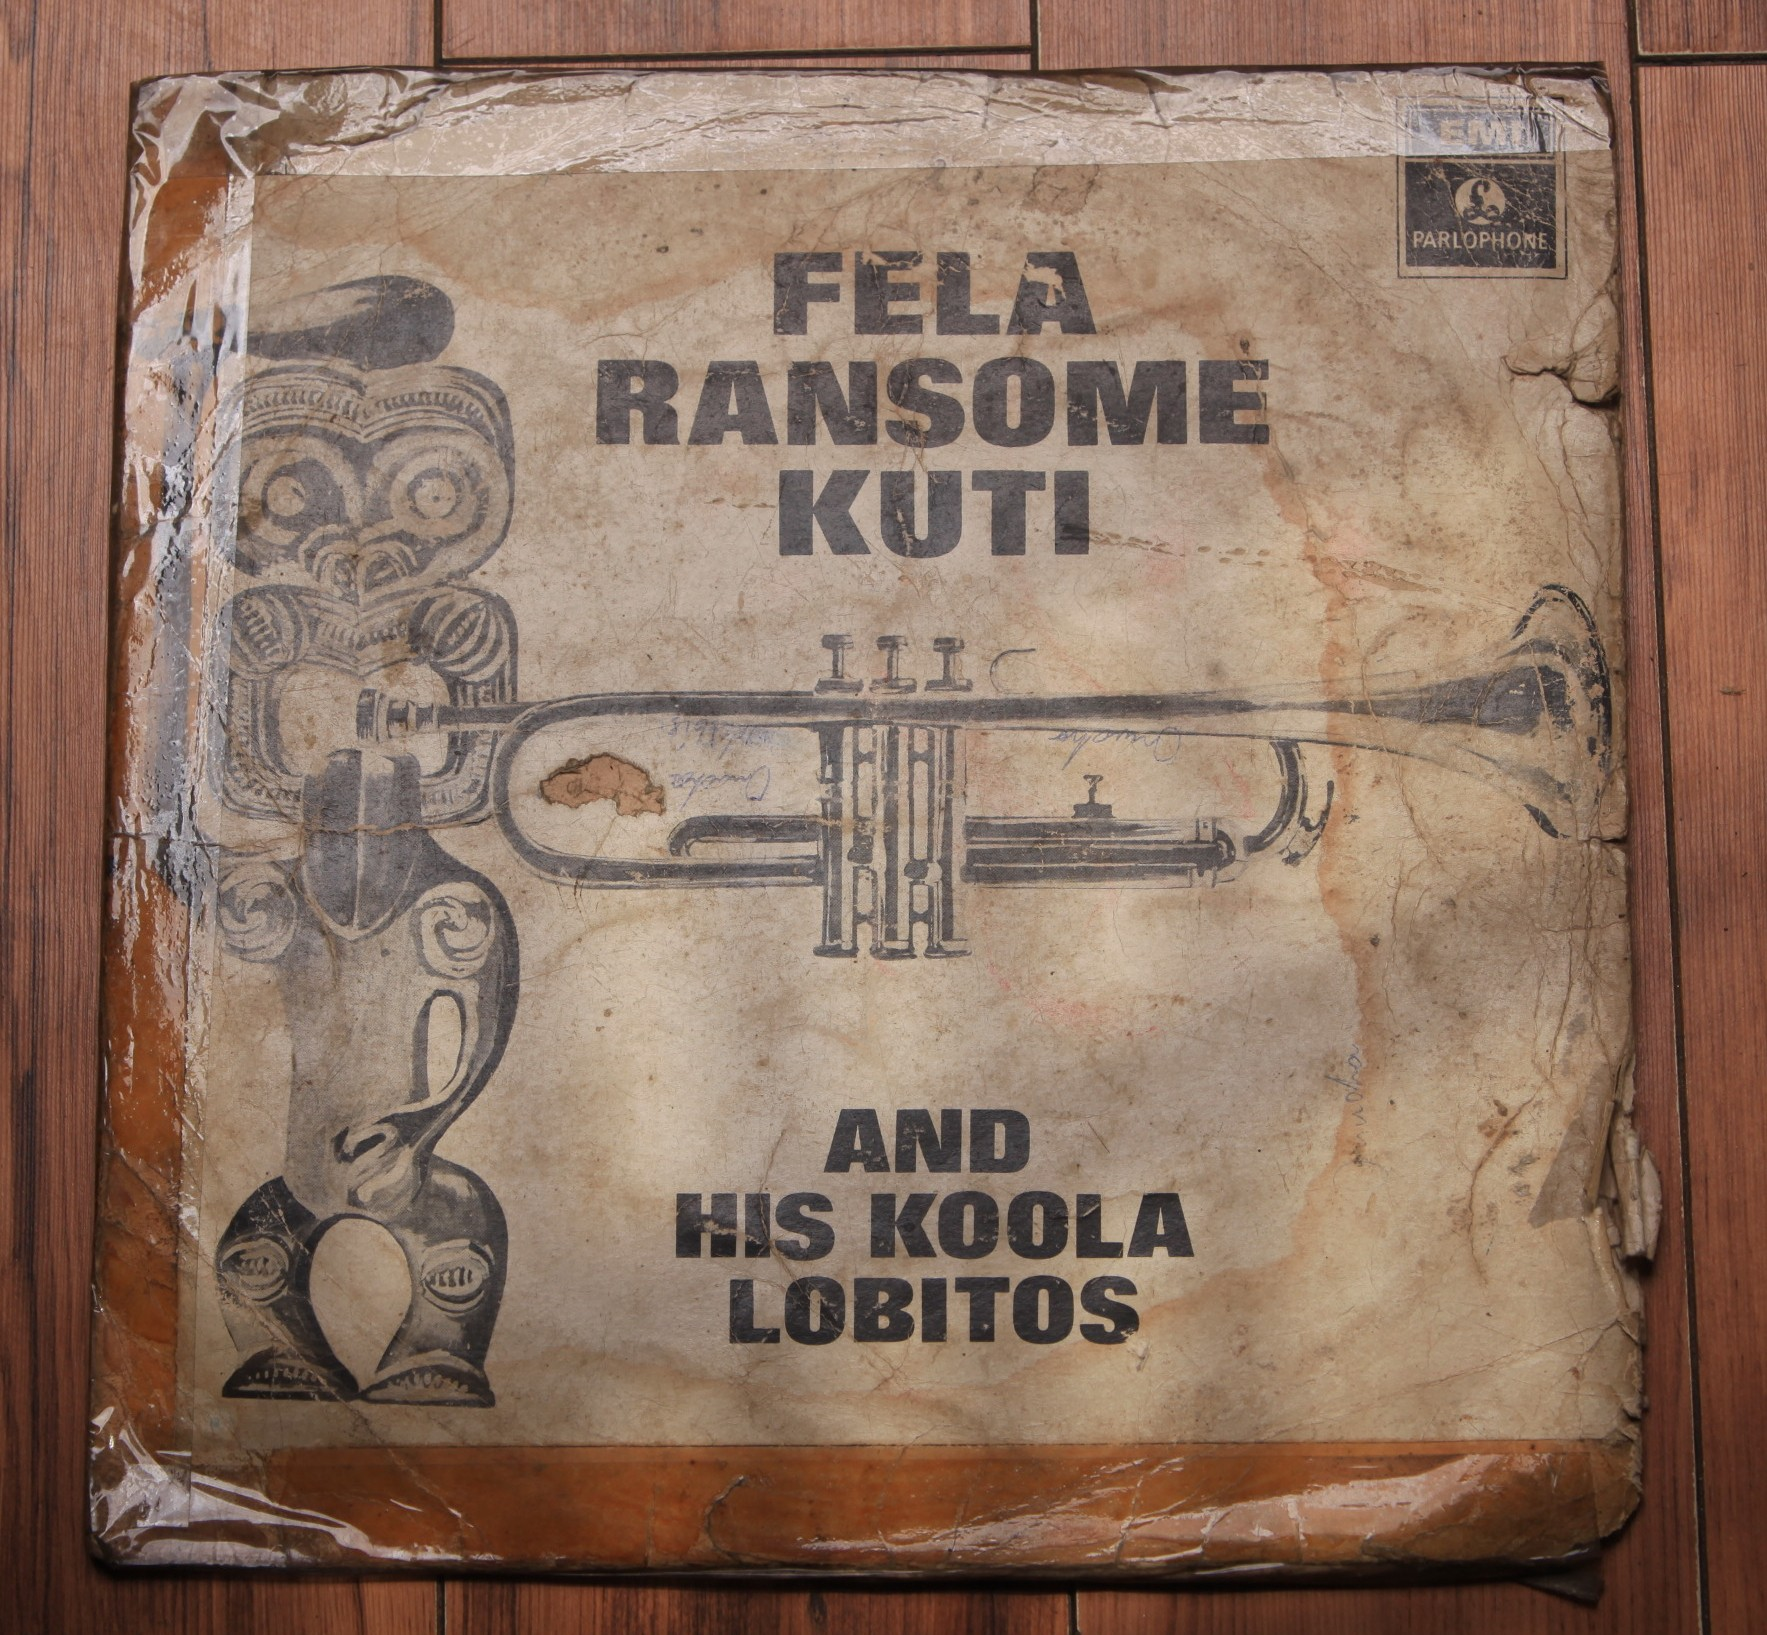 1968 Fela Ransome-Kuti and His Koola Lobitos Fela Ransome-Kuti and the Koola Lobitos (LP Nigeria, EMI PNL 1002)